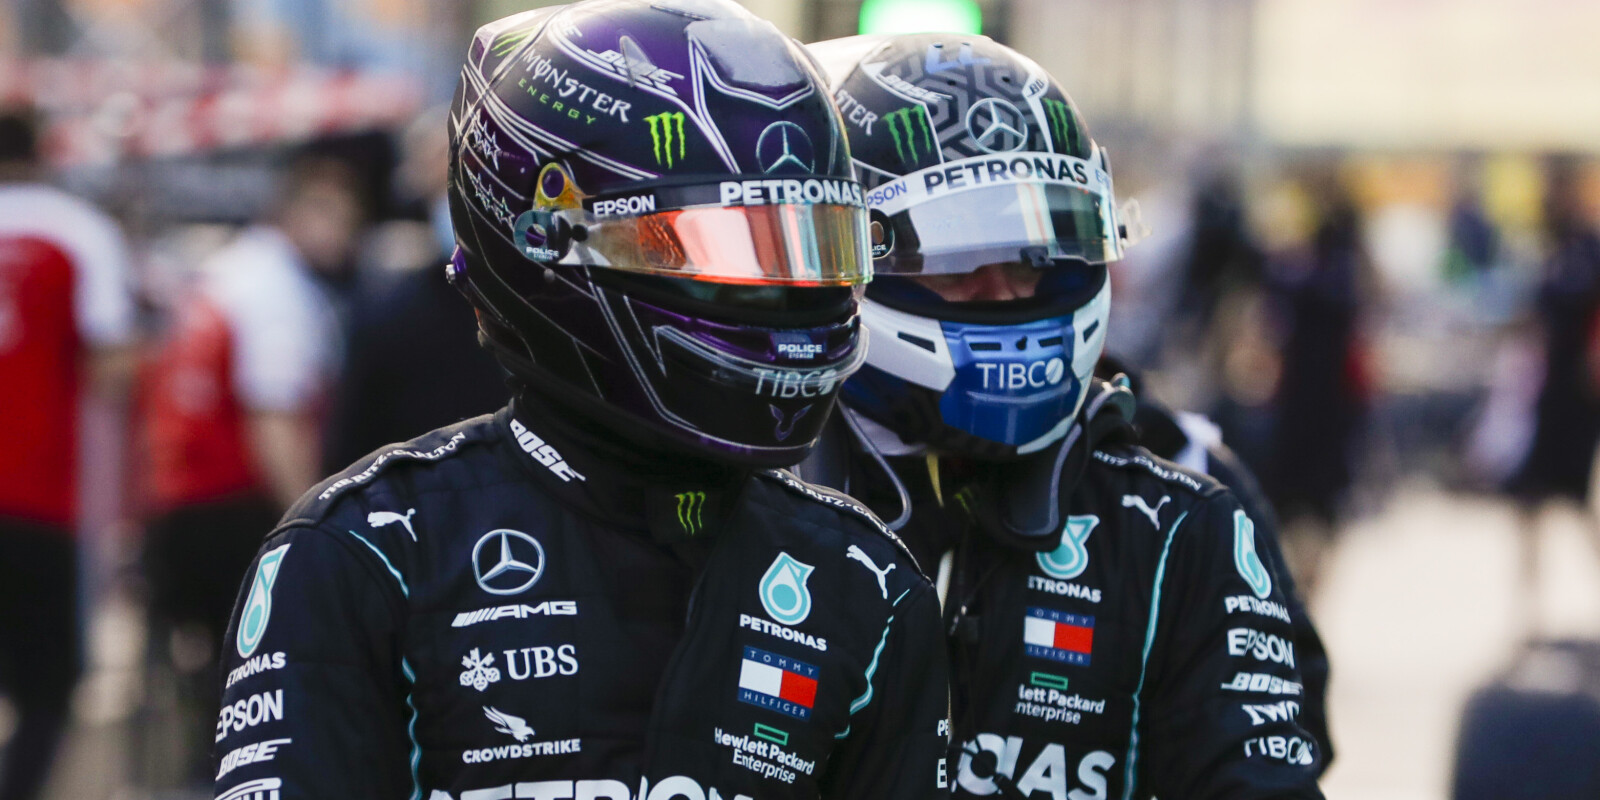 Images from the 2020 Turkish Grand Prix